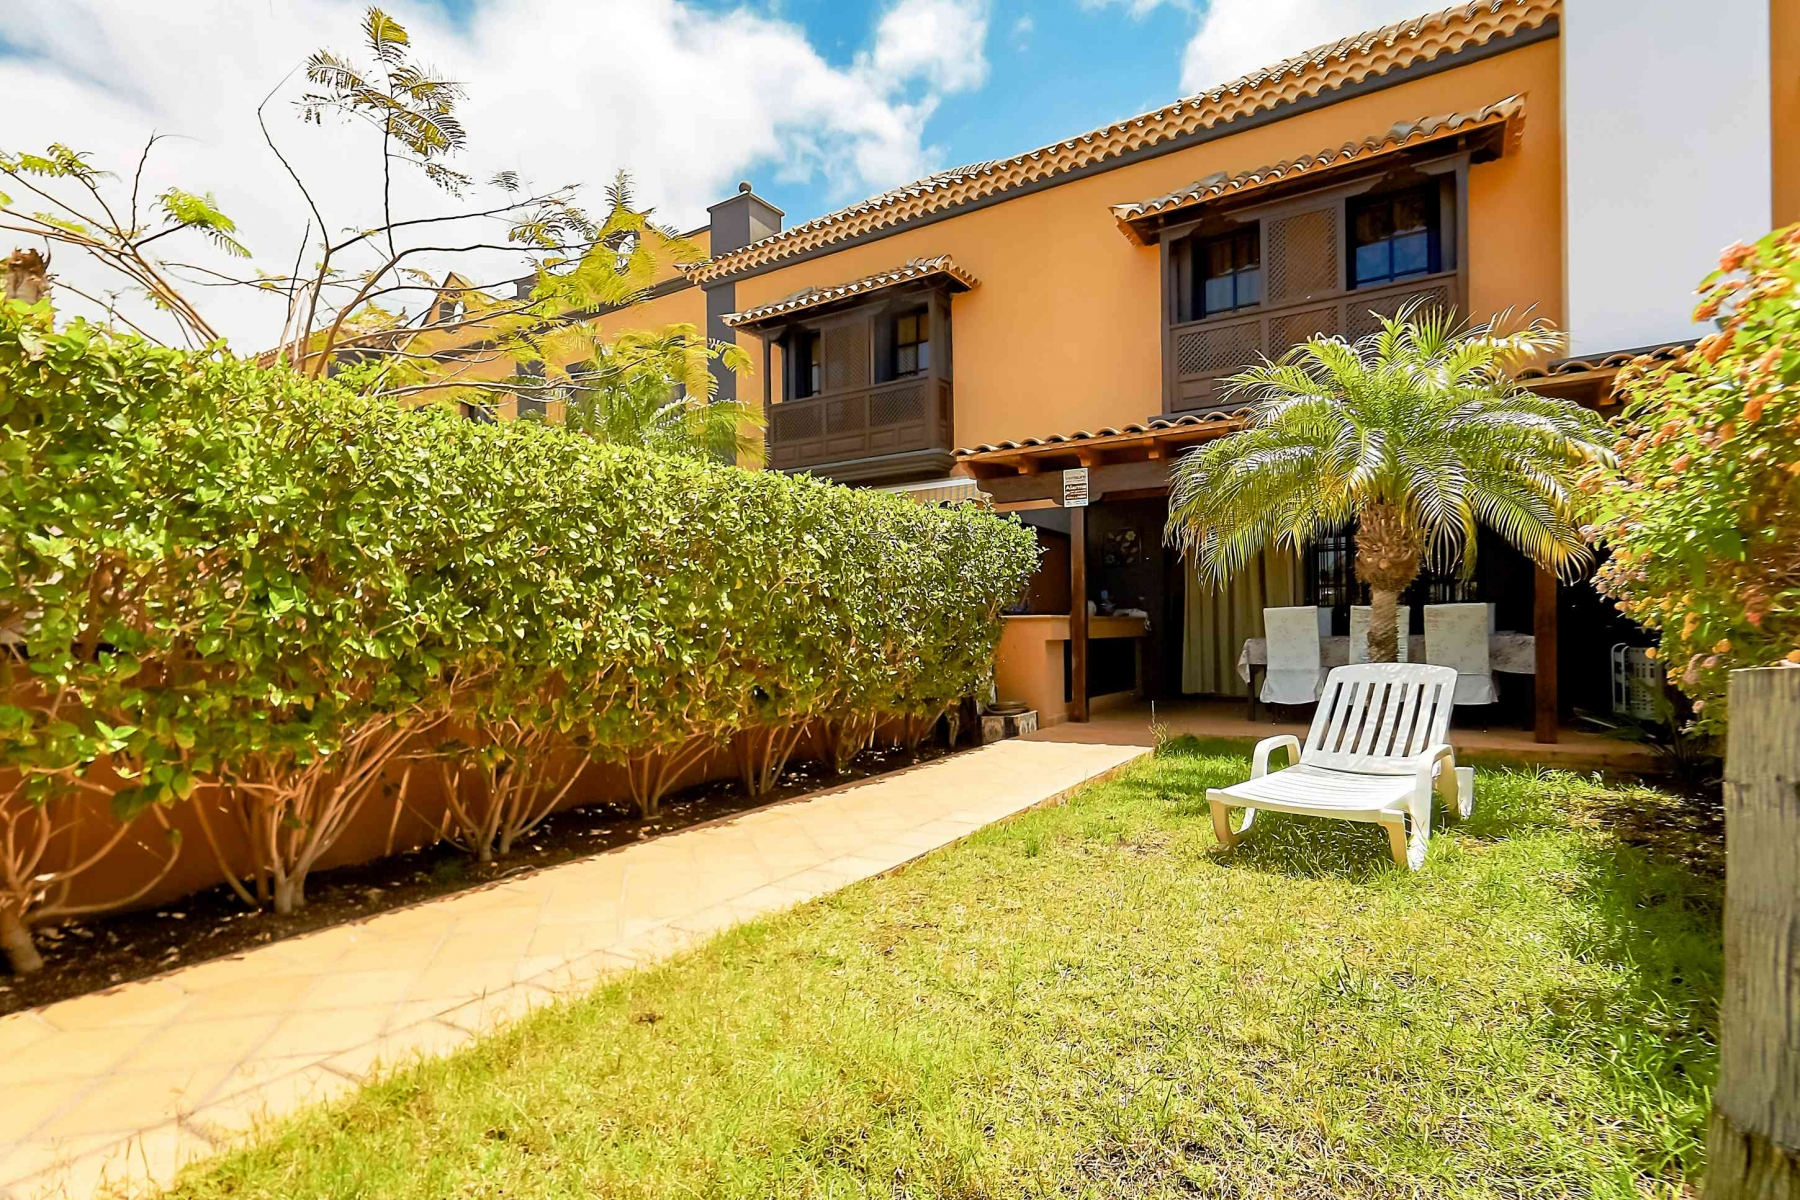 Properties for Sale in Tenerife, Canary Islands, Spain | SylkWayStar Real Estate. 3 Bedroom Townhouse LA DUQUESA. Image-24969